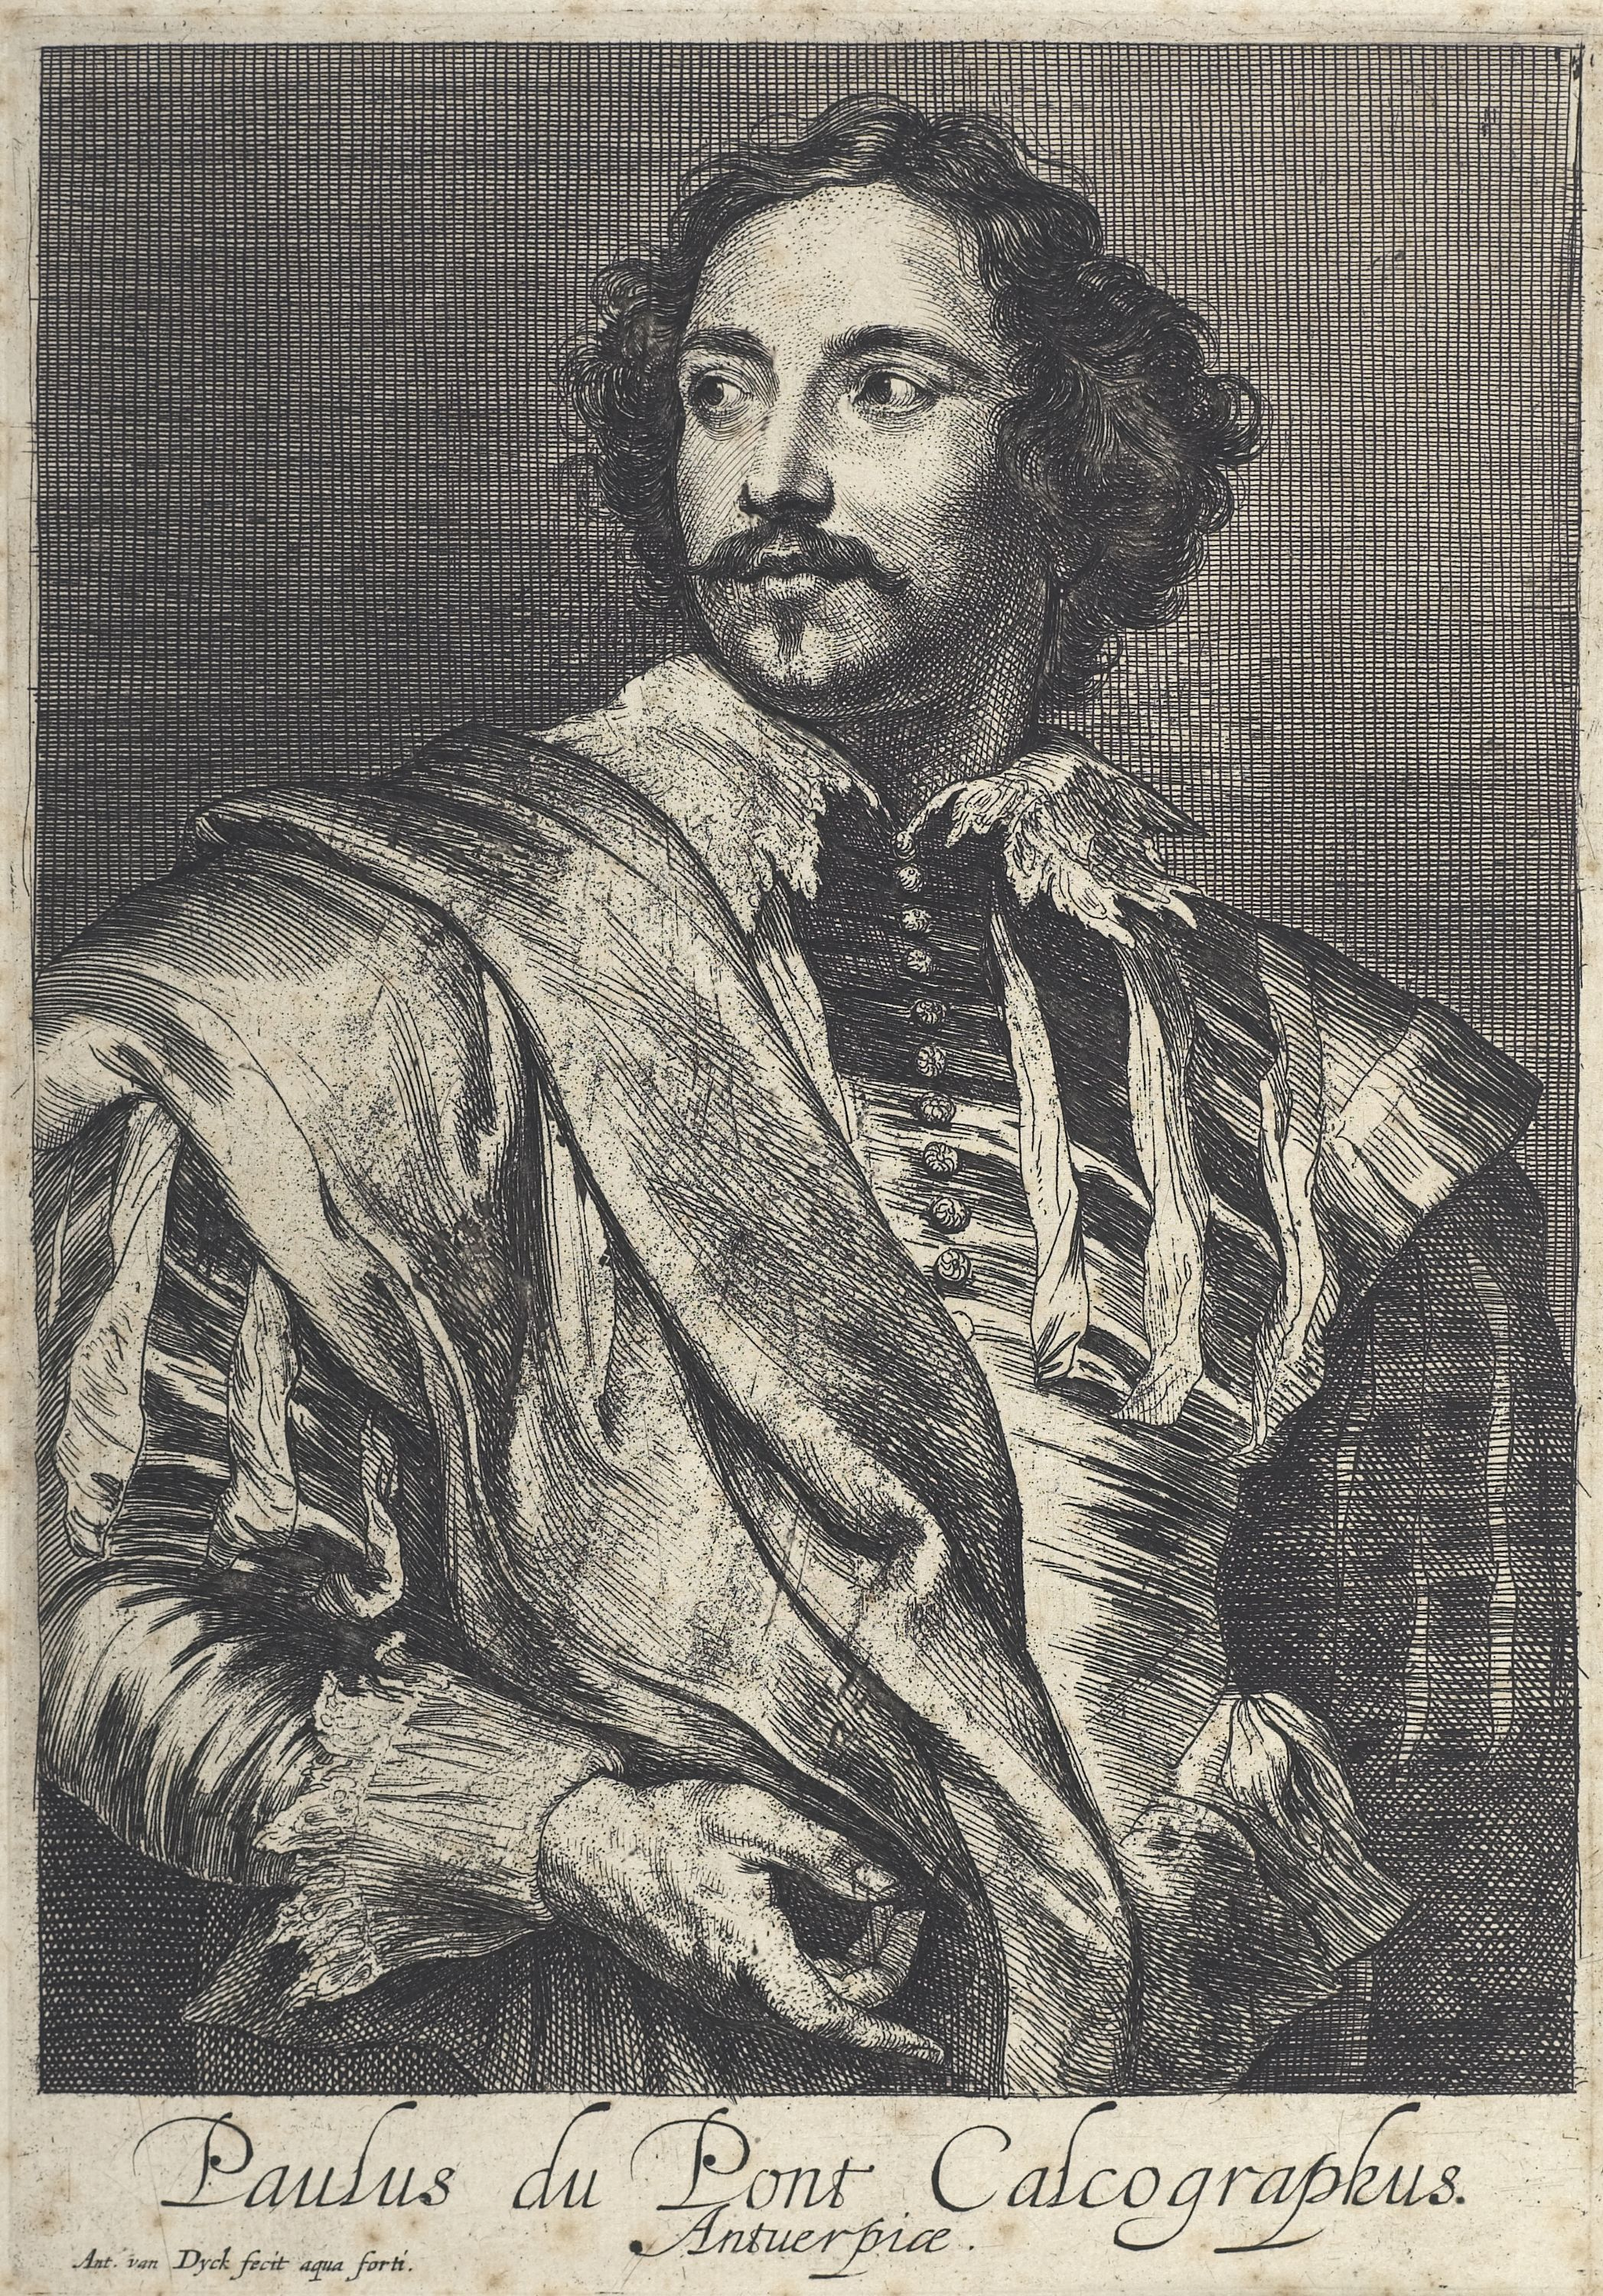 Etching of a man in his finery and a mustache